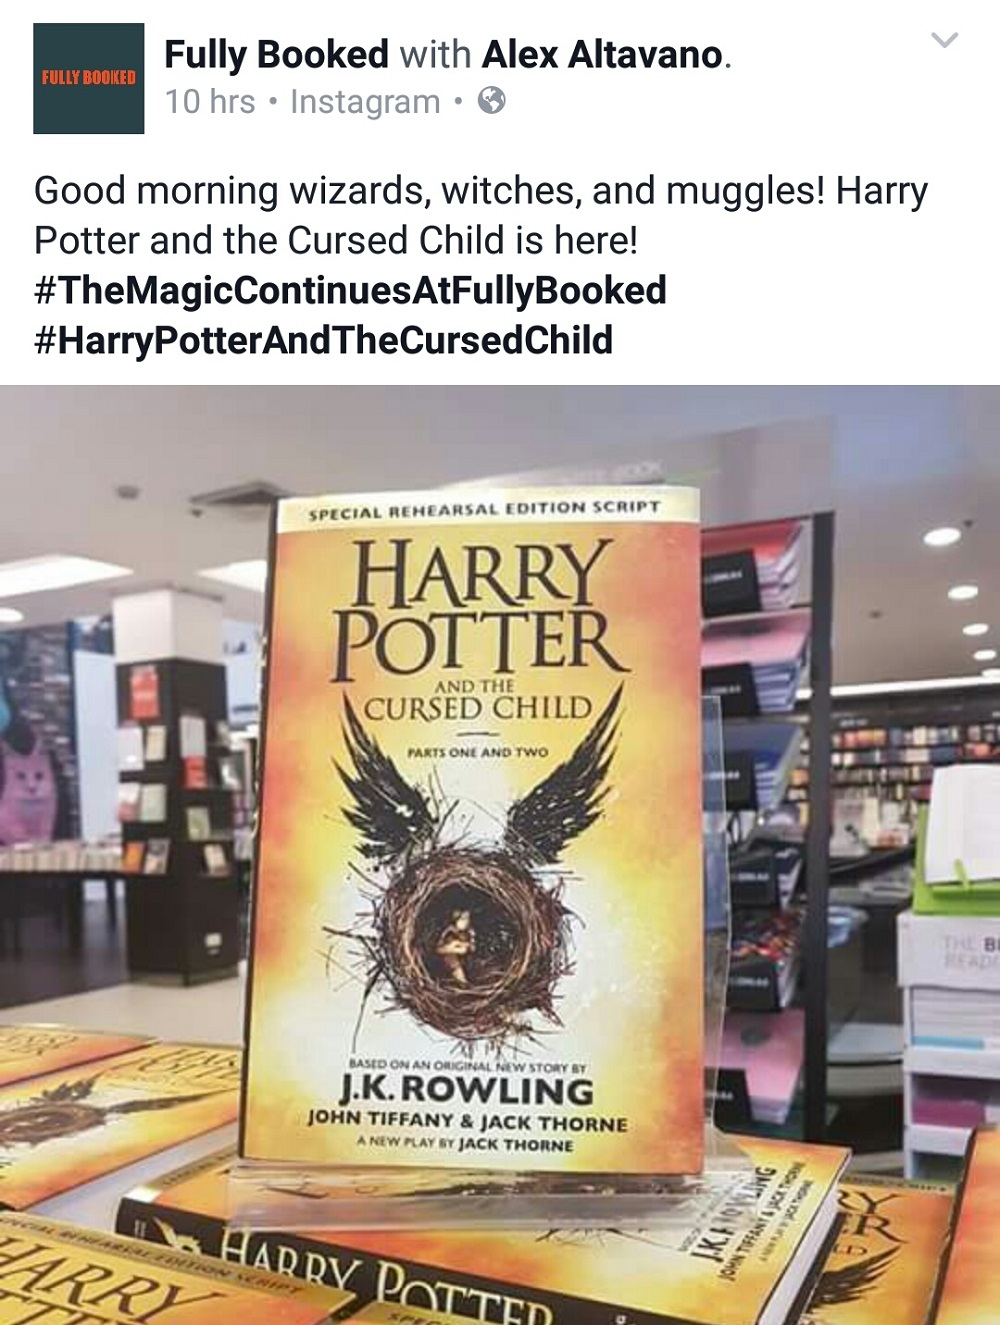 Harry Potter and the Cursed Child, Harry Potter books collection, Harry Potter books scam